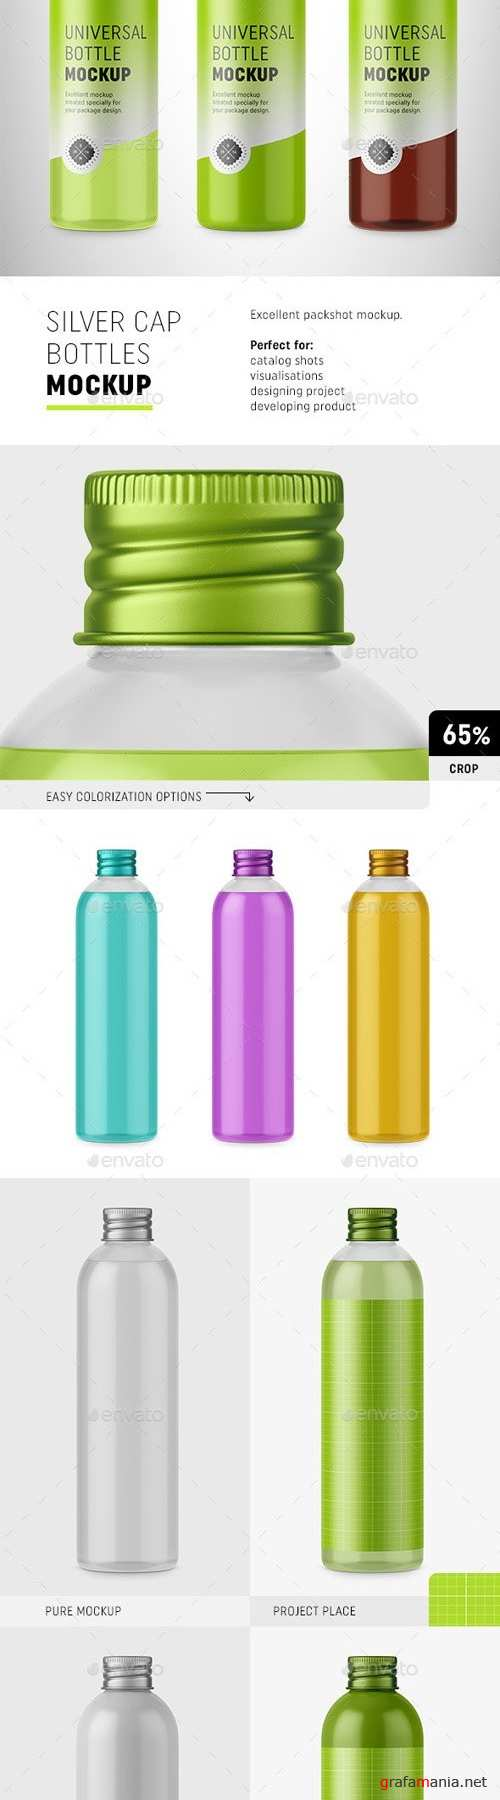 Bottles with Silver Cap Mockup 20234390